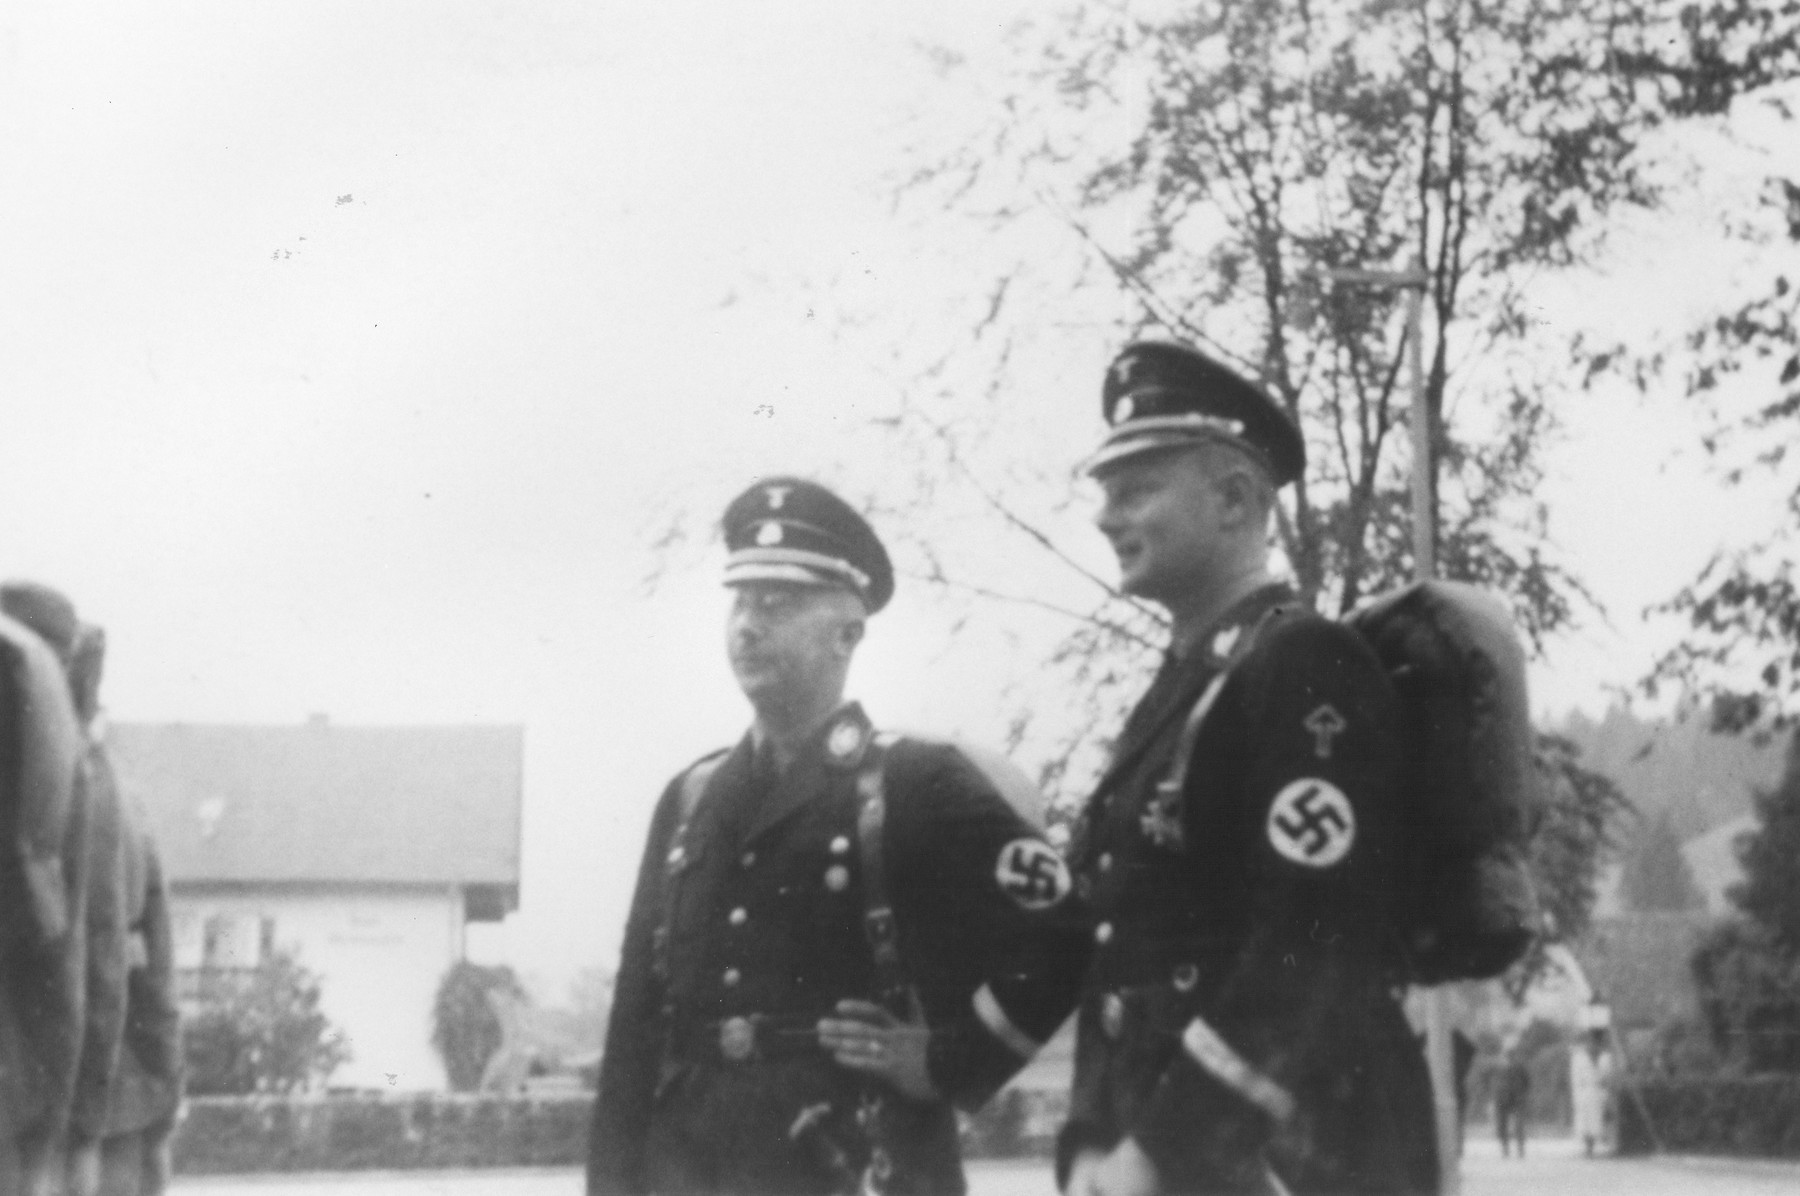 Reichsfuehrer-SS Heinrich Himmler stands outside with Karl Wolff.